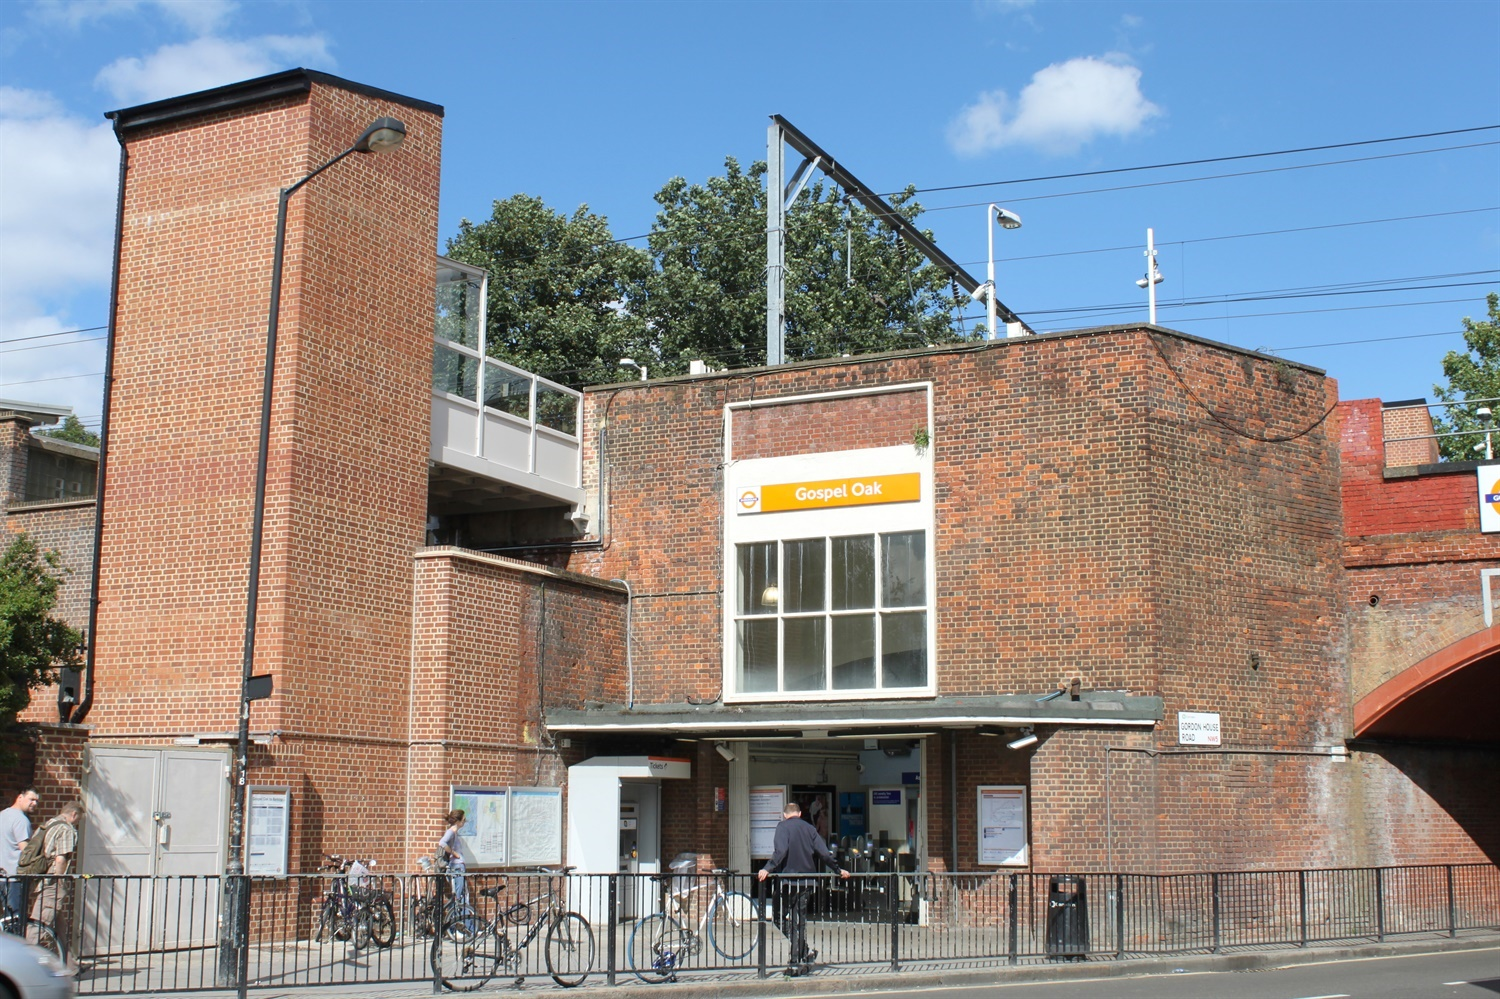 Gospel Oak to Barking Line to close for eight months for electrification upgrades